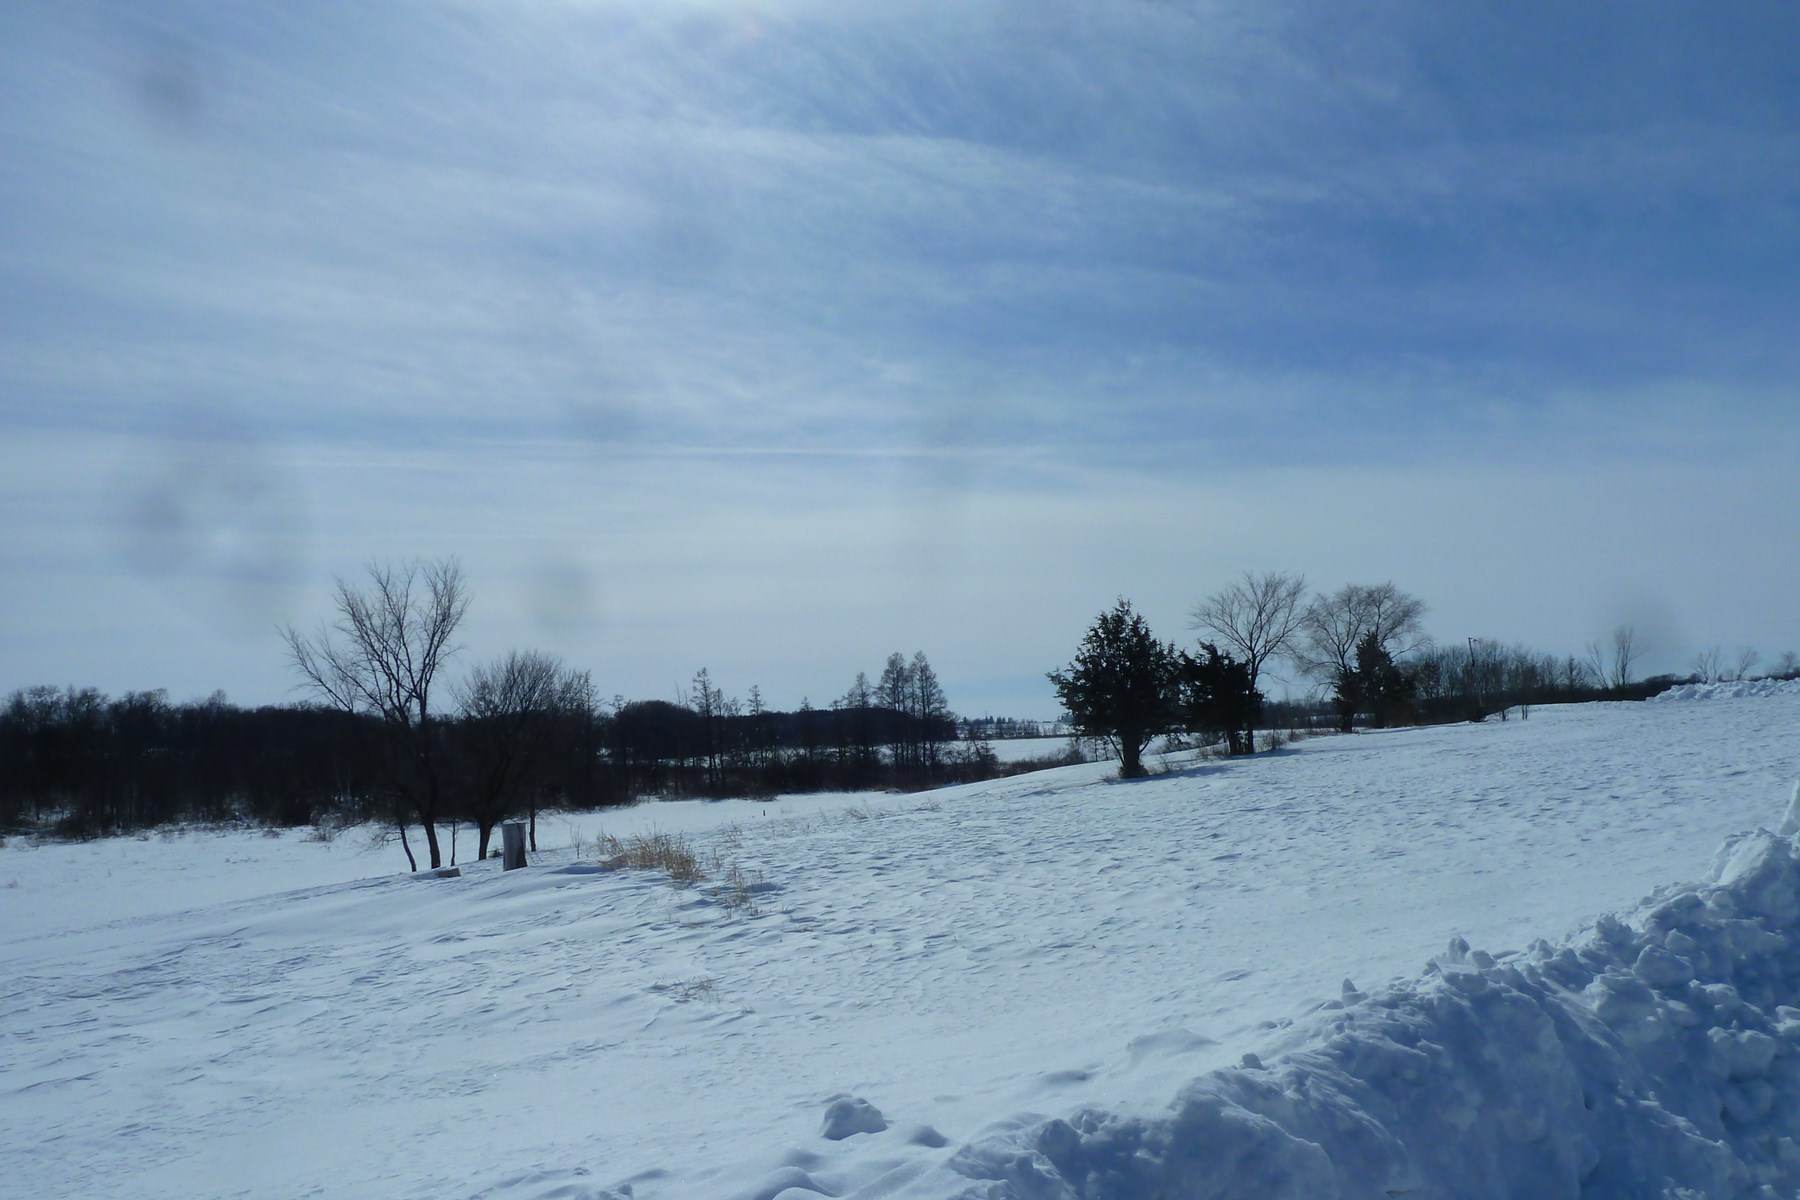 Annandale MN 120 Acres of Recreational Land Online Auction Ends 4/5/19